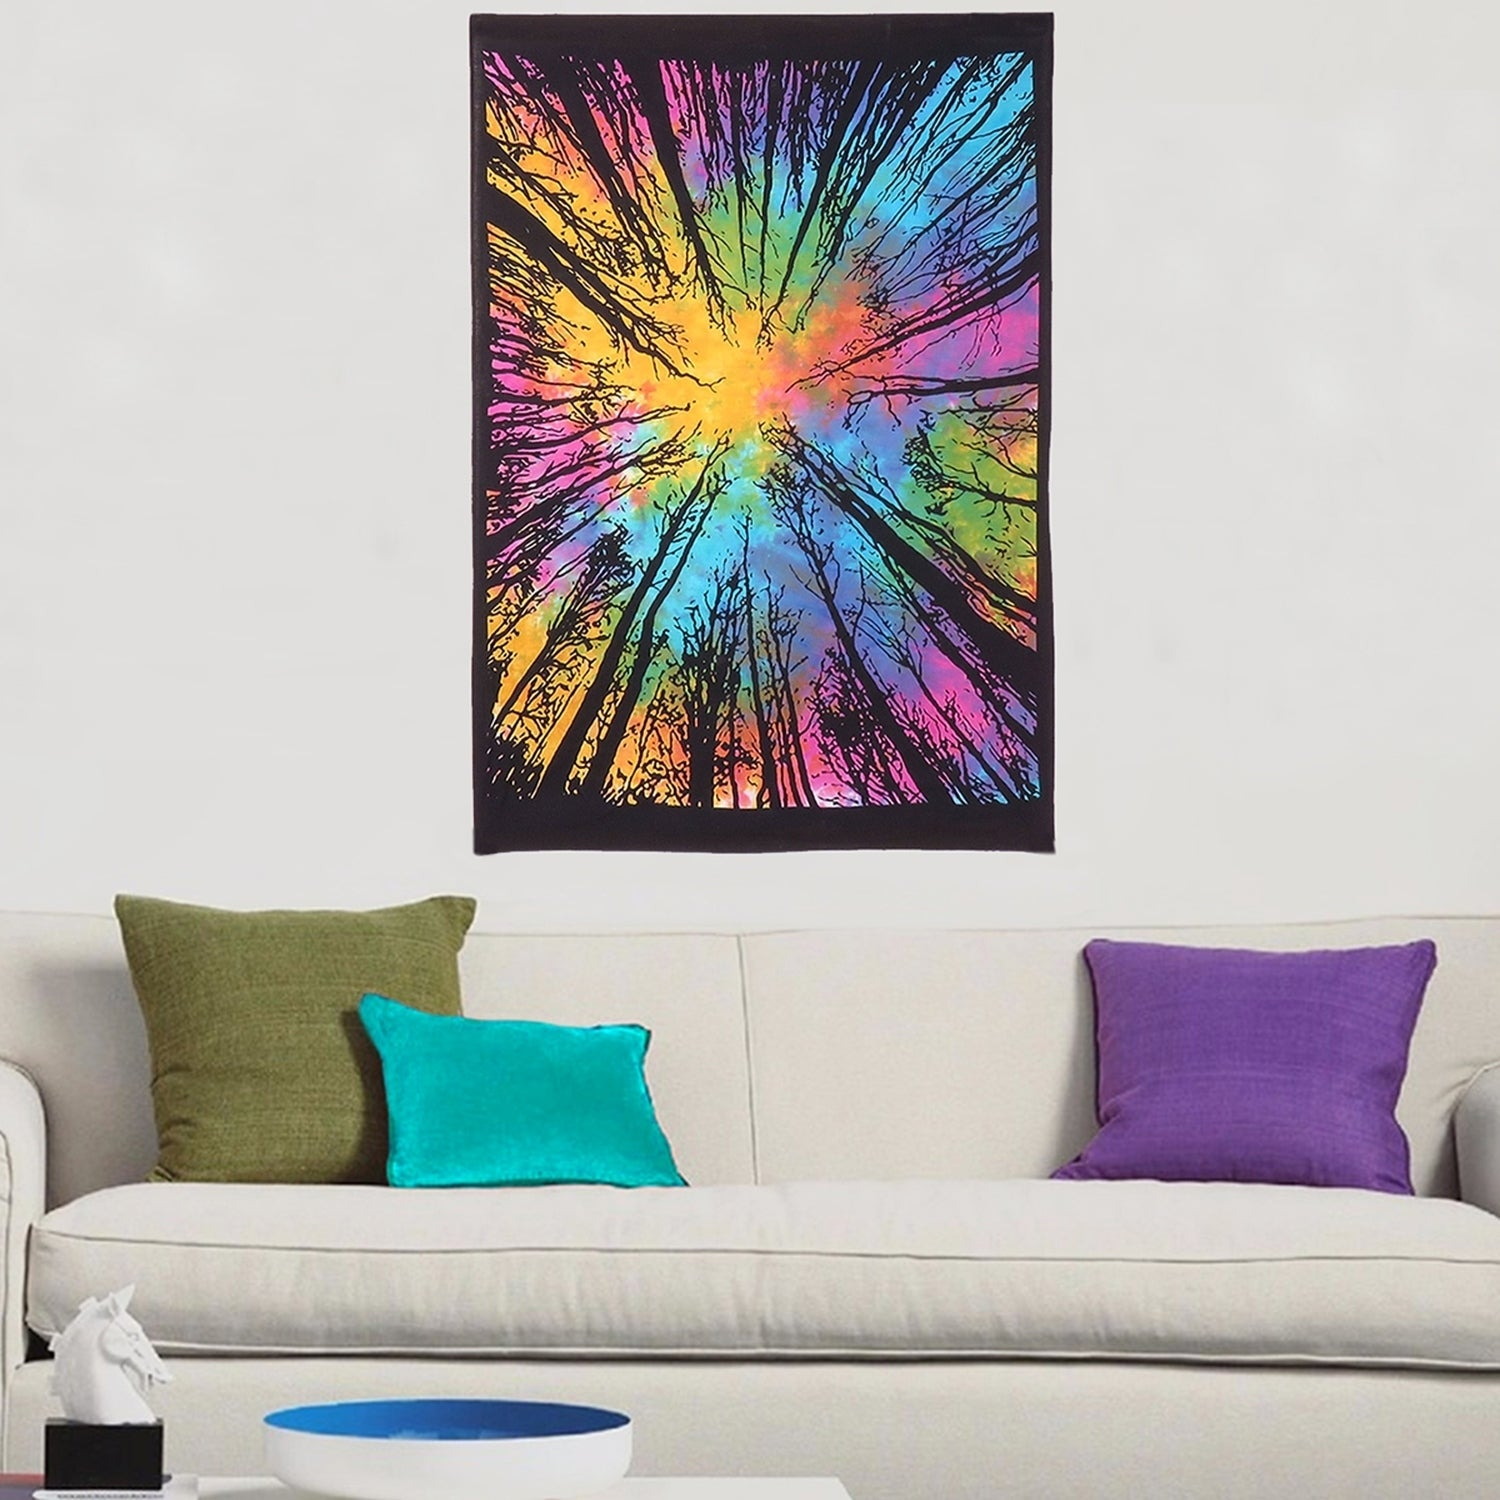 Shop Multi Color Tree Of Life Cotton Wall Hanging Decor Poster Tapestry Throw 30x45 Inches Overstock 21731047